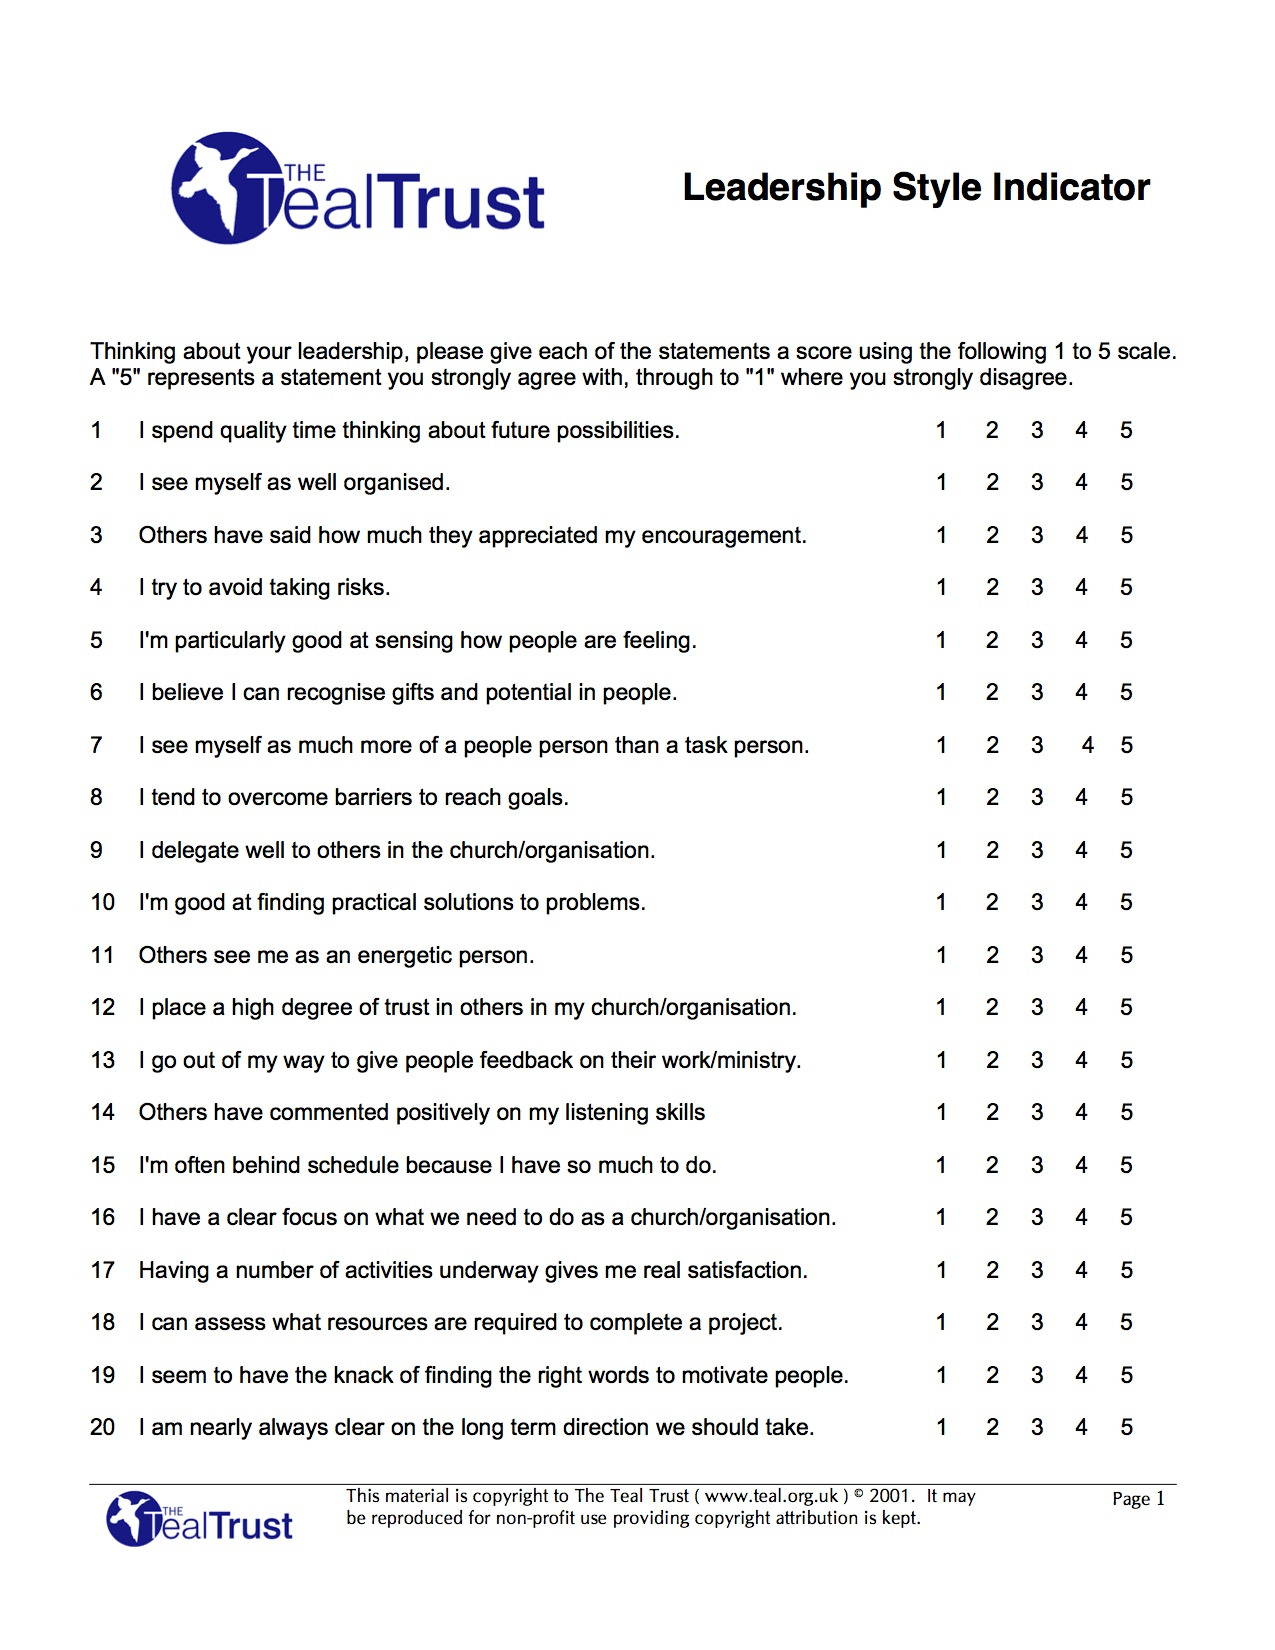 Massif image with leadership quiz printable